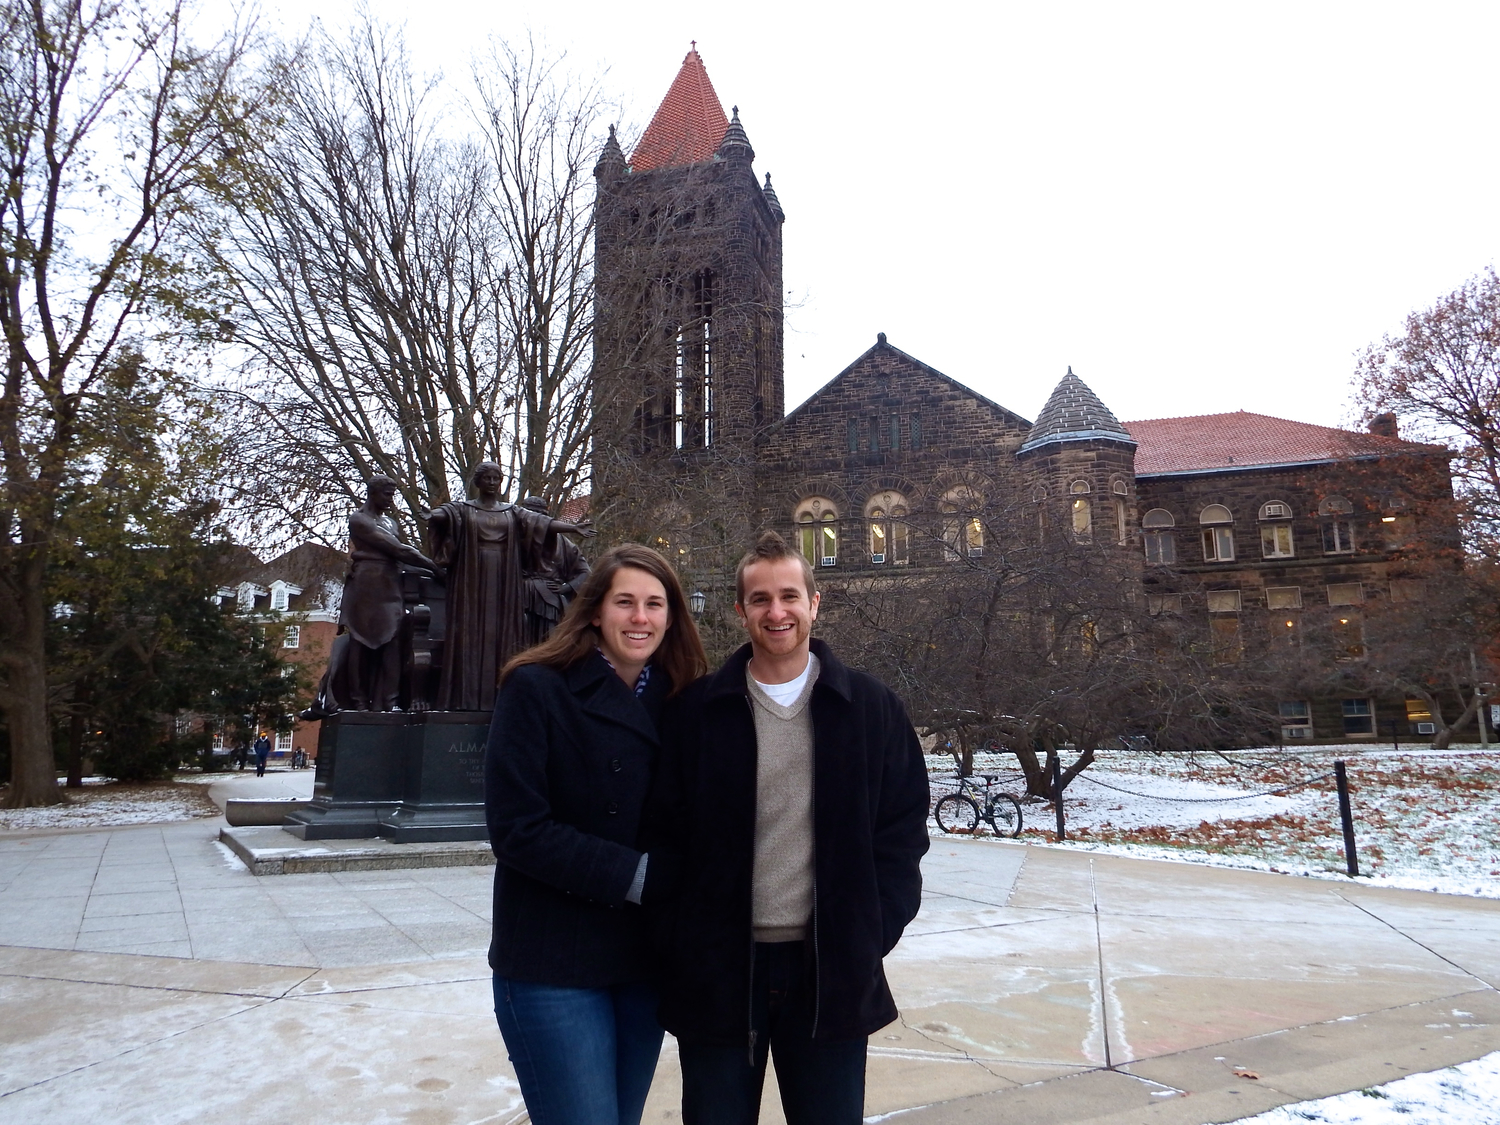 Nate and Laura Amodio work with InterVarsity Christian Fellowship at the University of Illinois.